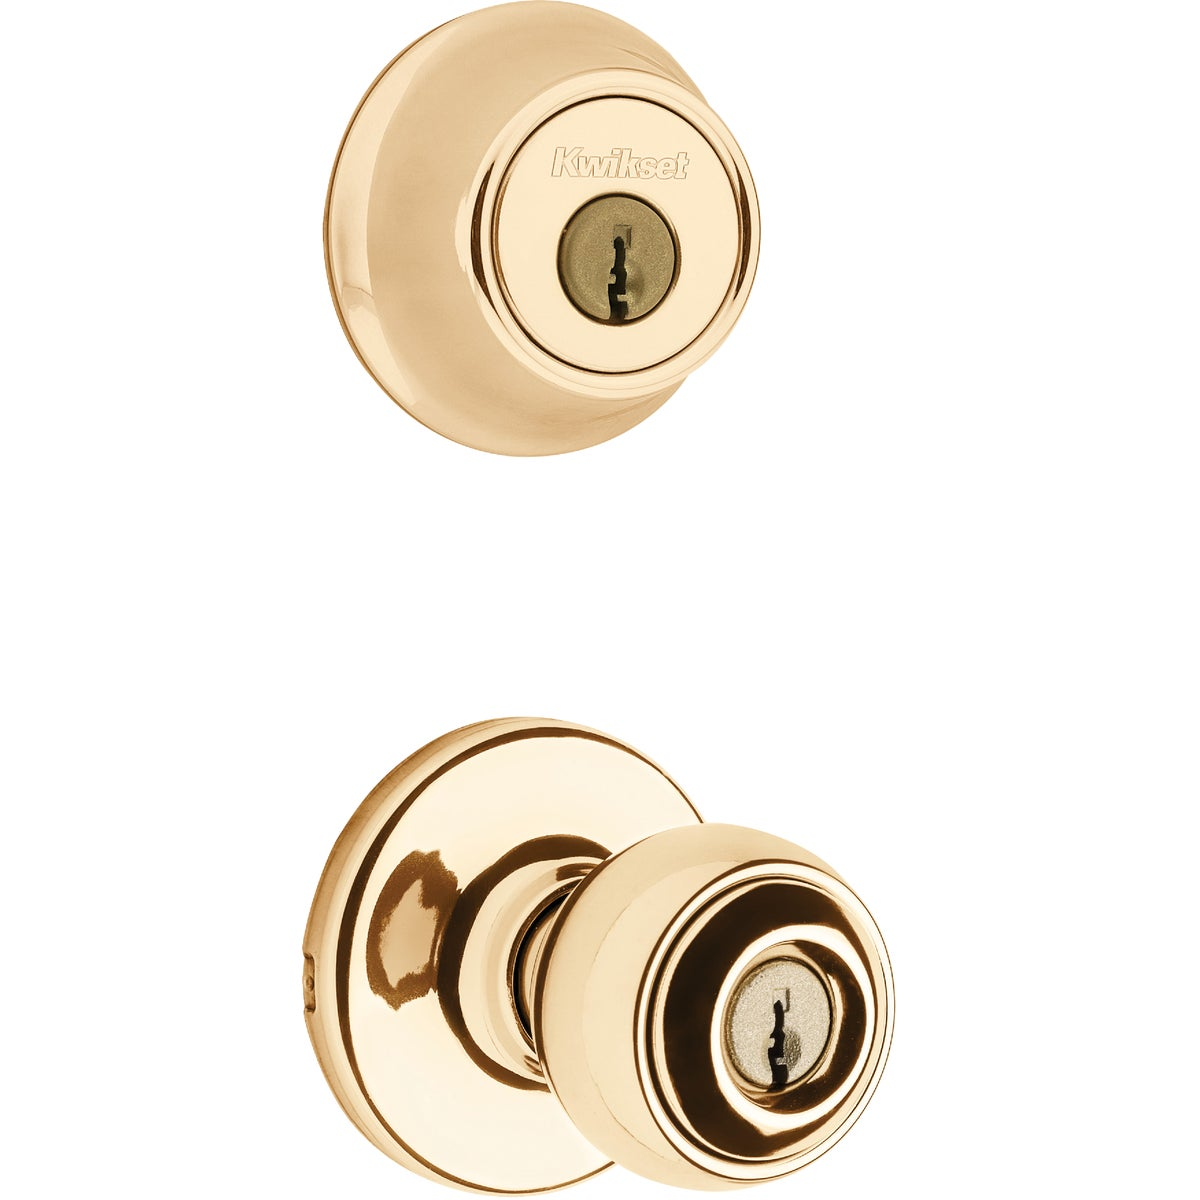 PB CP POLO ENTRY COMBO - 690P 3 CP CODE K6 by Kwikset